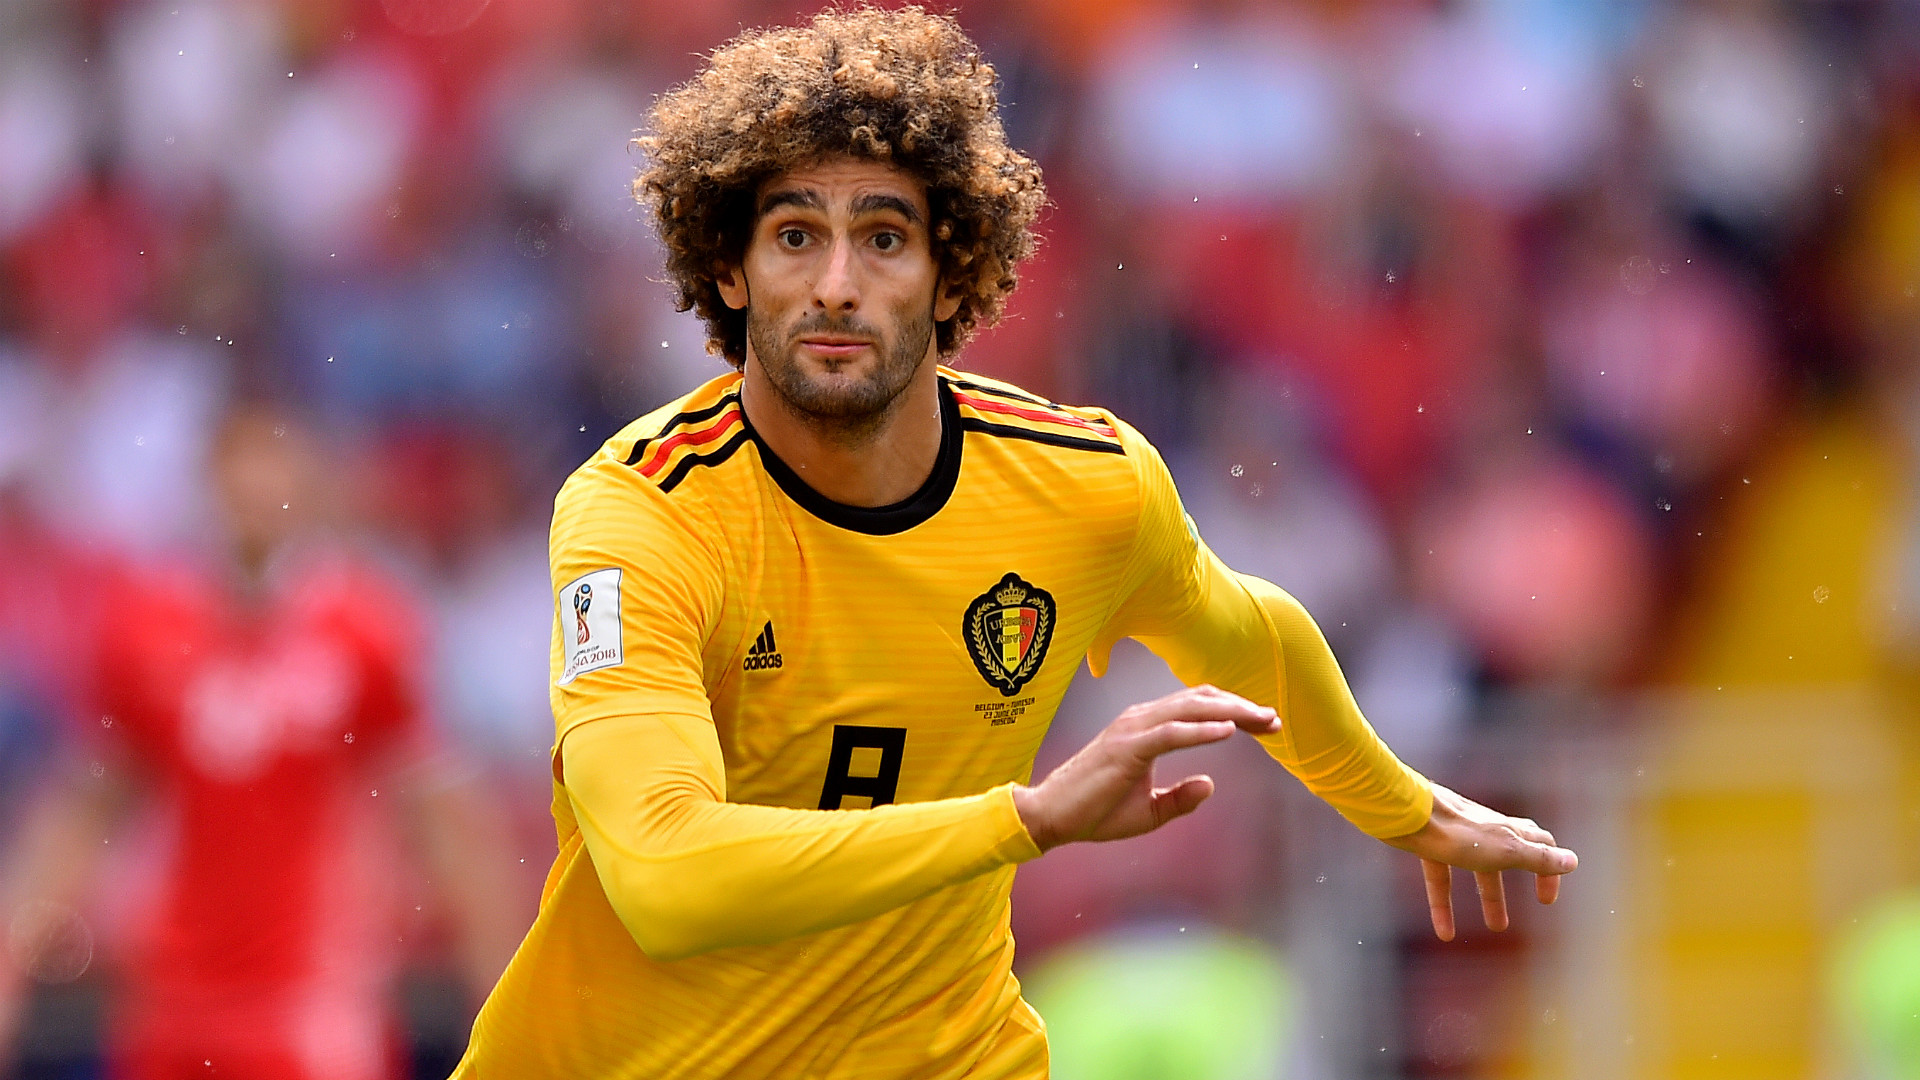 Marouane Fellaini Belgium Tunisia World Cup